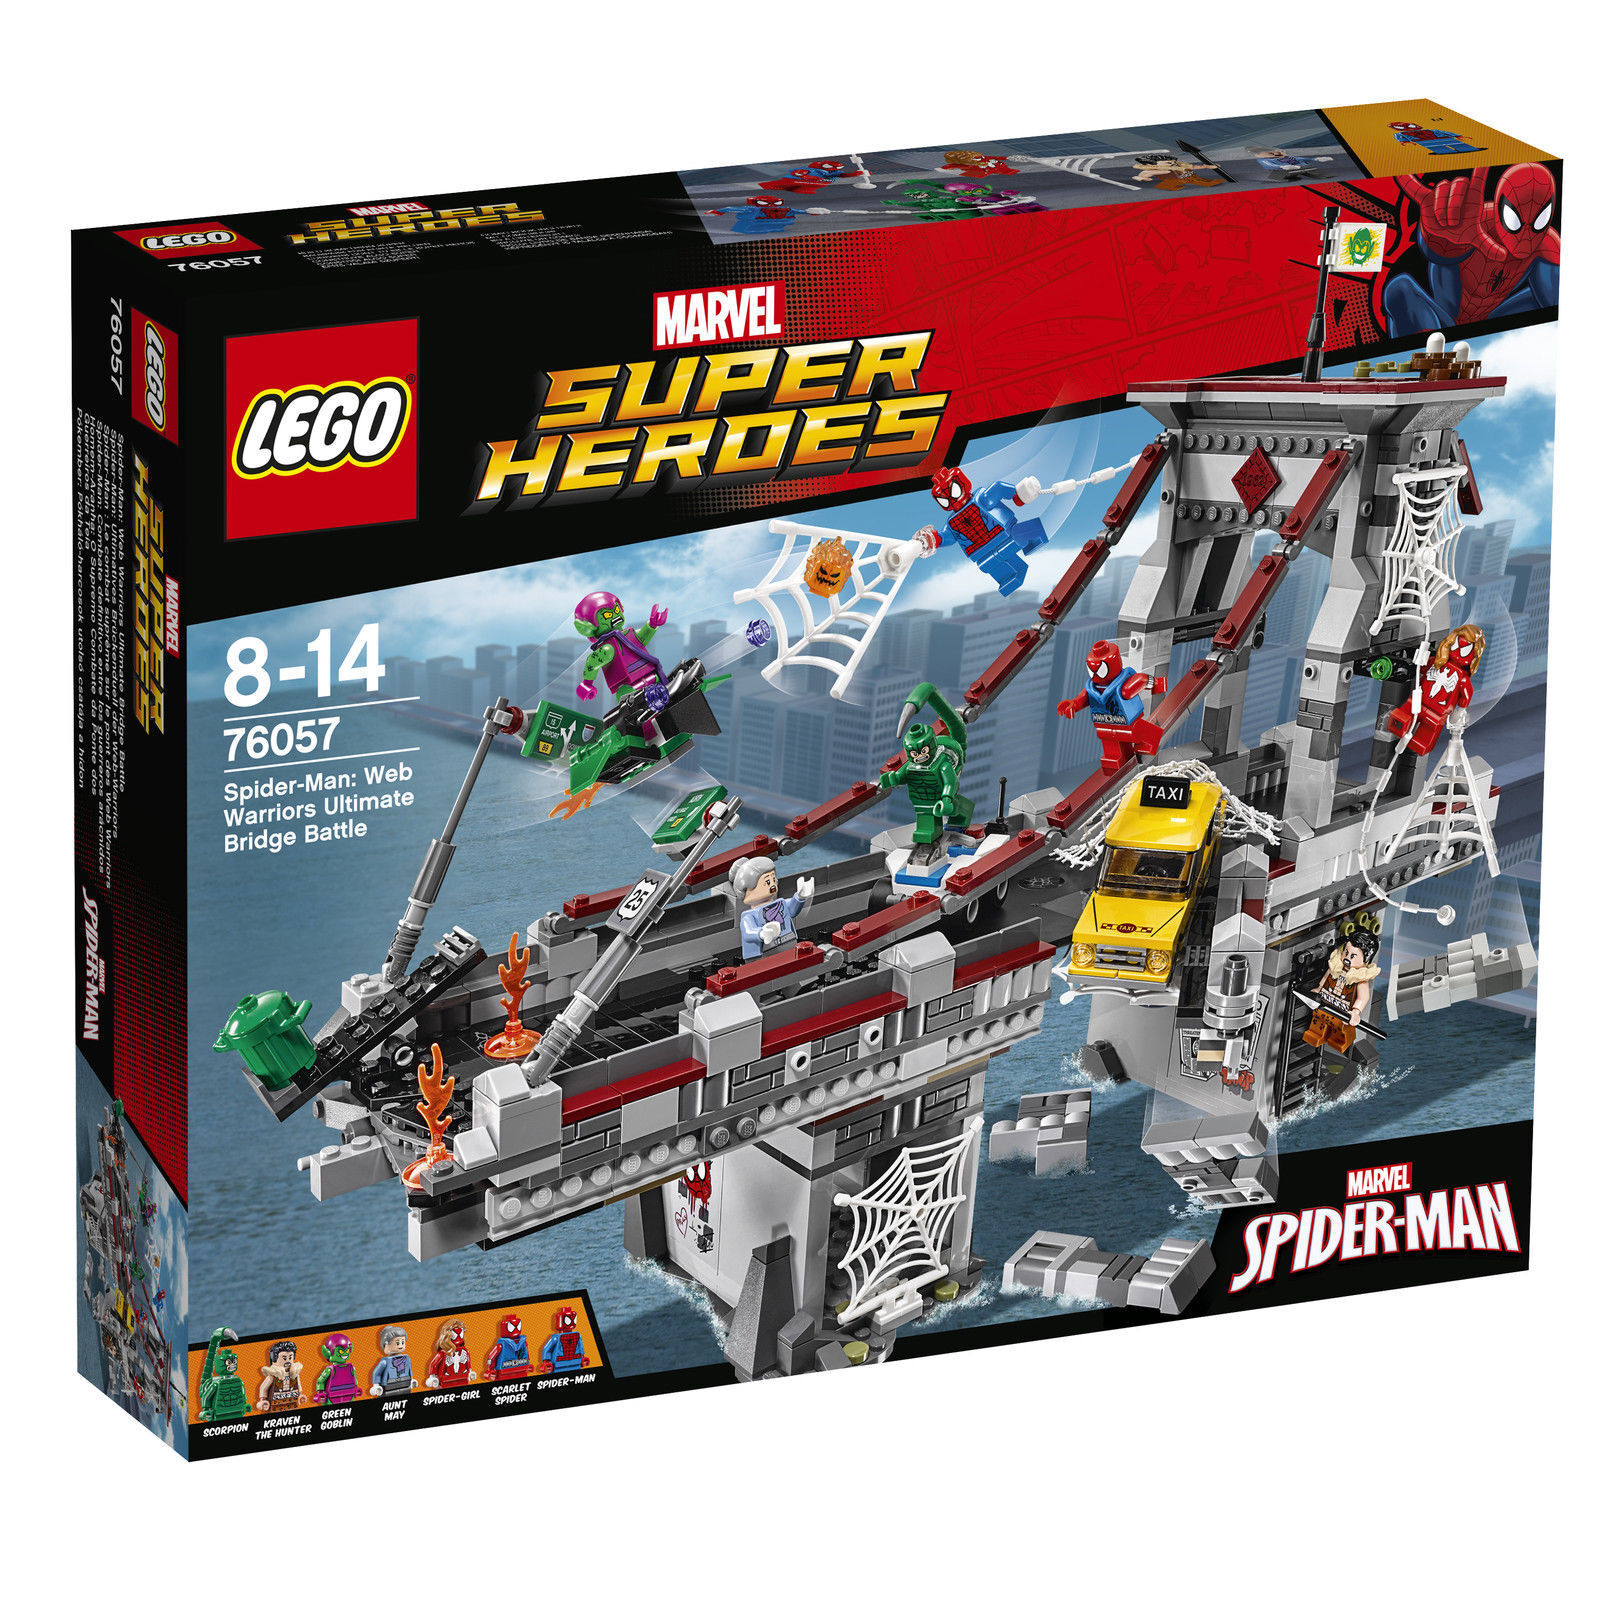 LEGO   Marvel Super Heroes Spider-Man Ultime ponts Duel Duel Duel 76057 NEUF NEW 9b4ab4